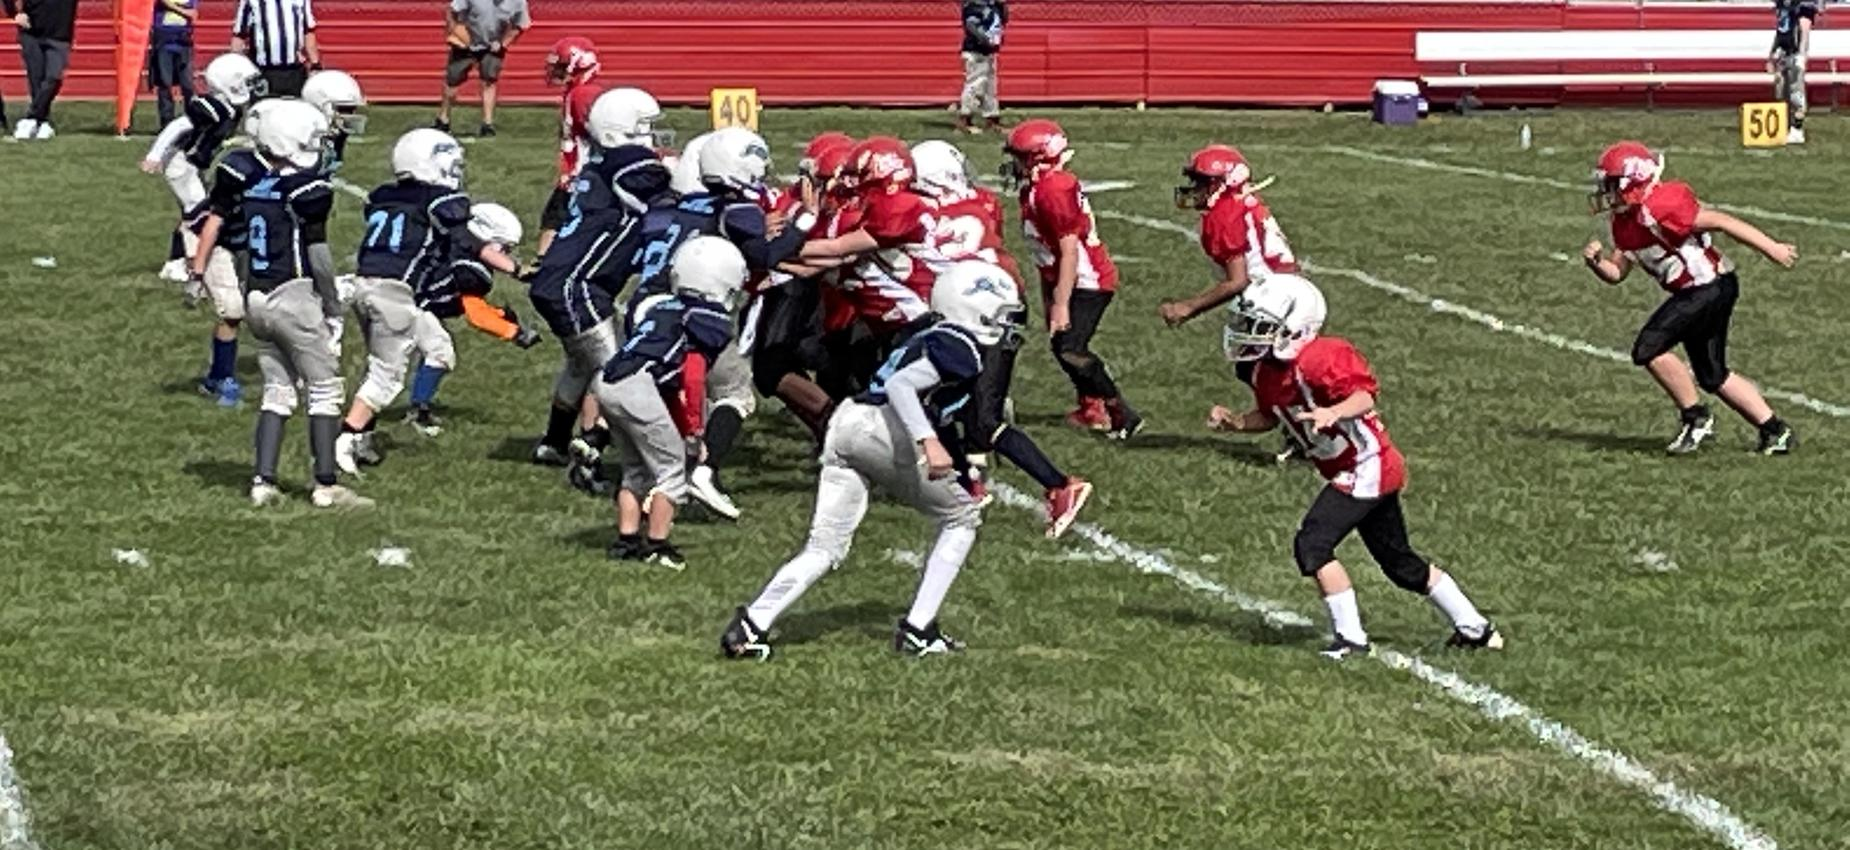 Football players play on a field.